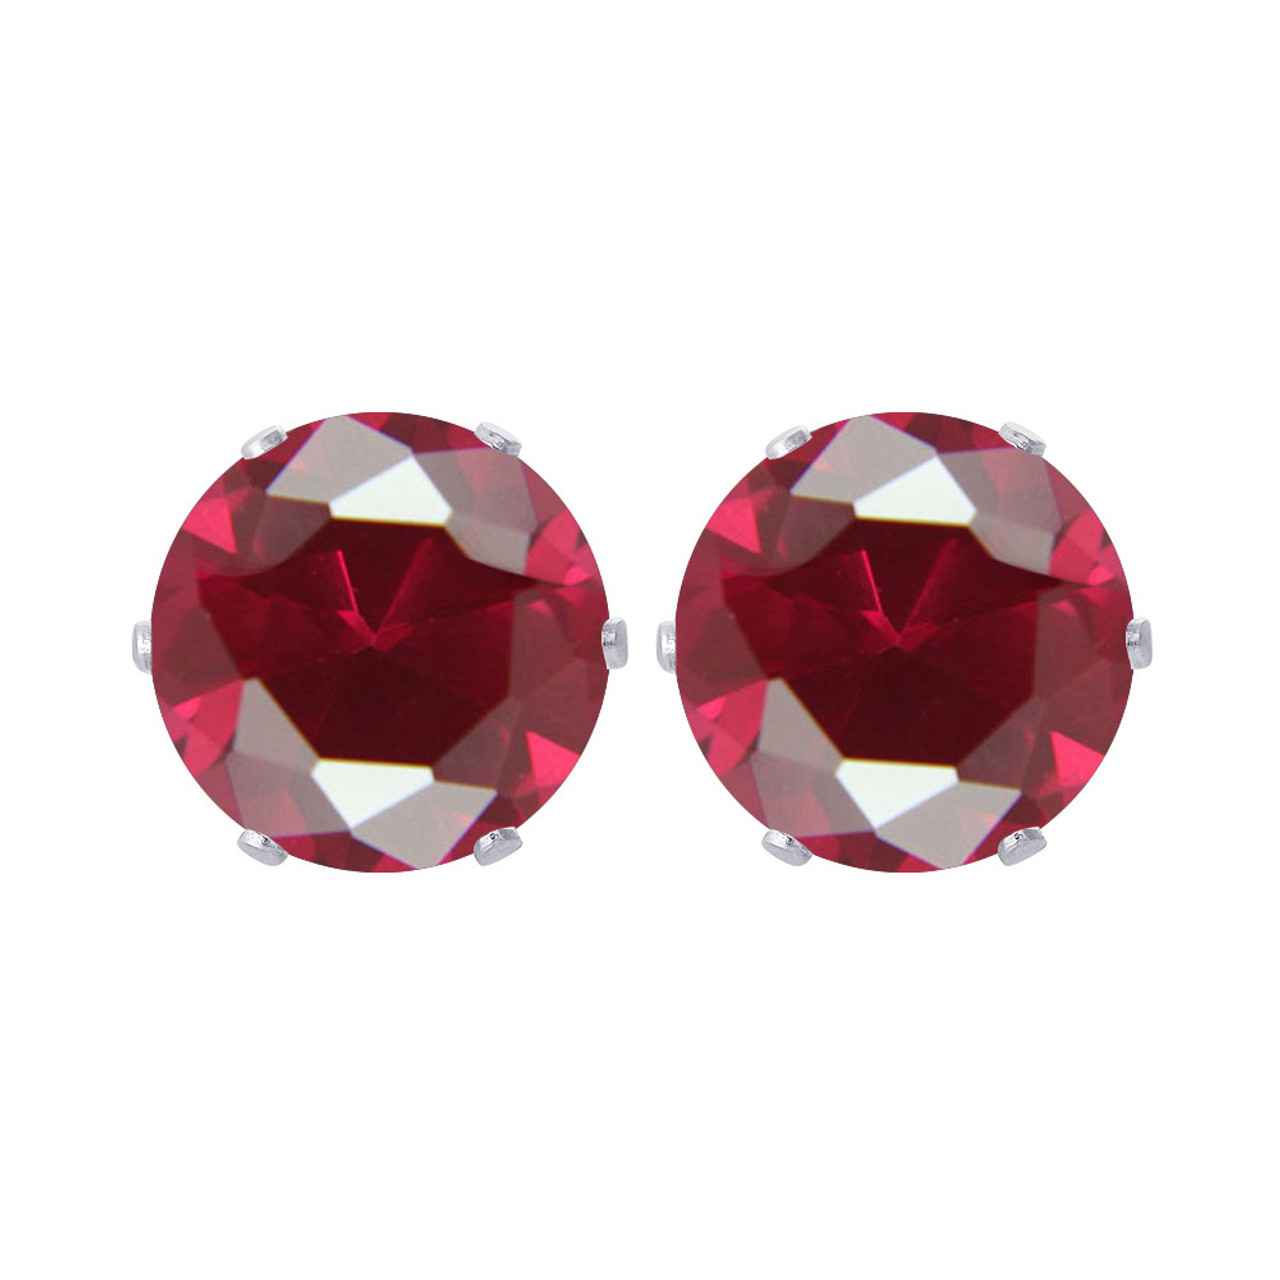 10mm Round Ruby Color CZ Stud Earrings